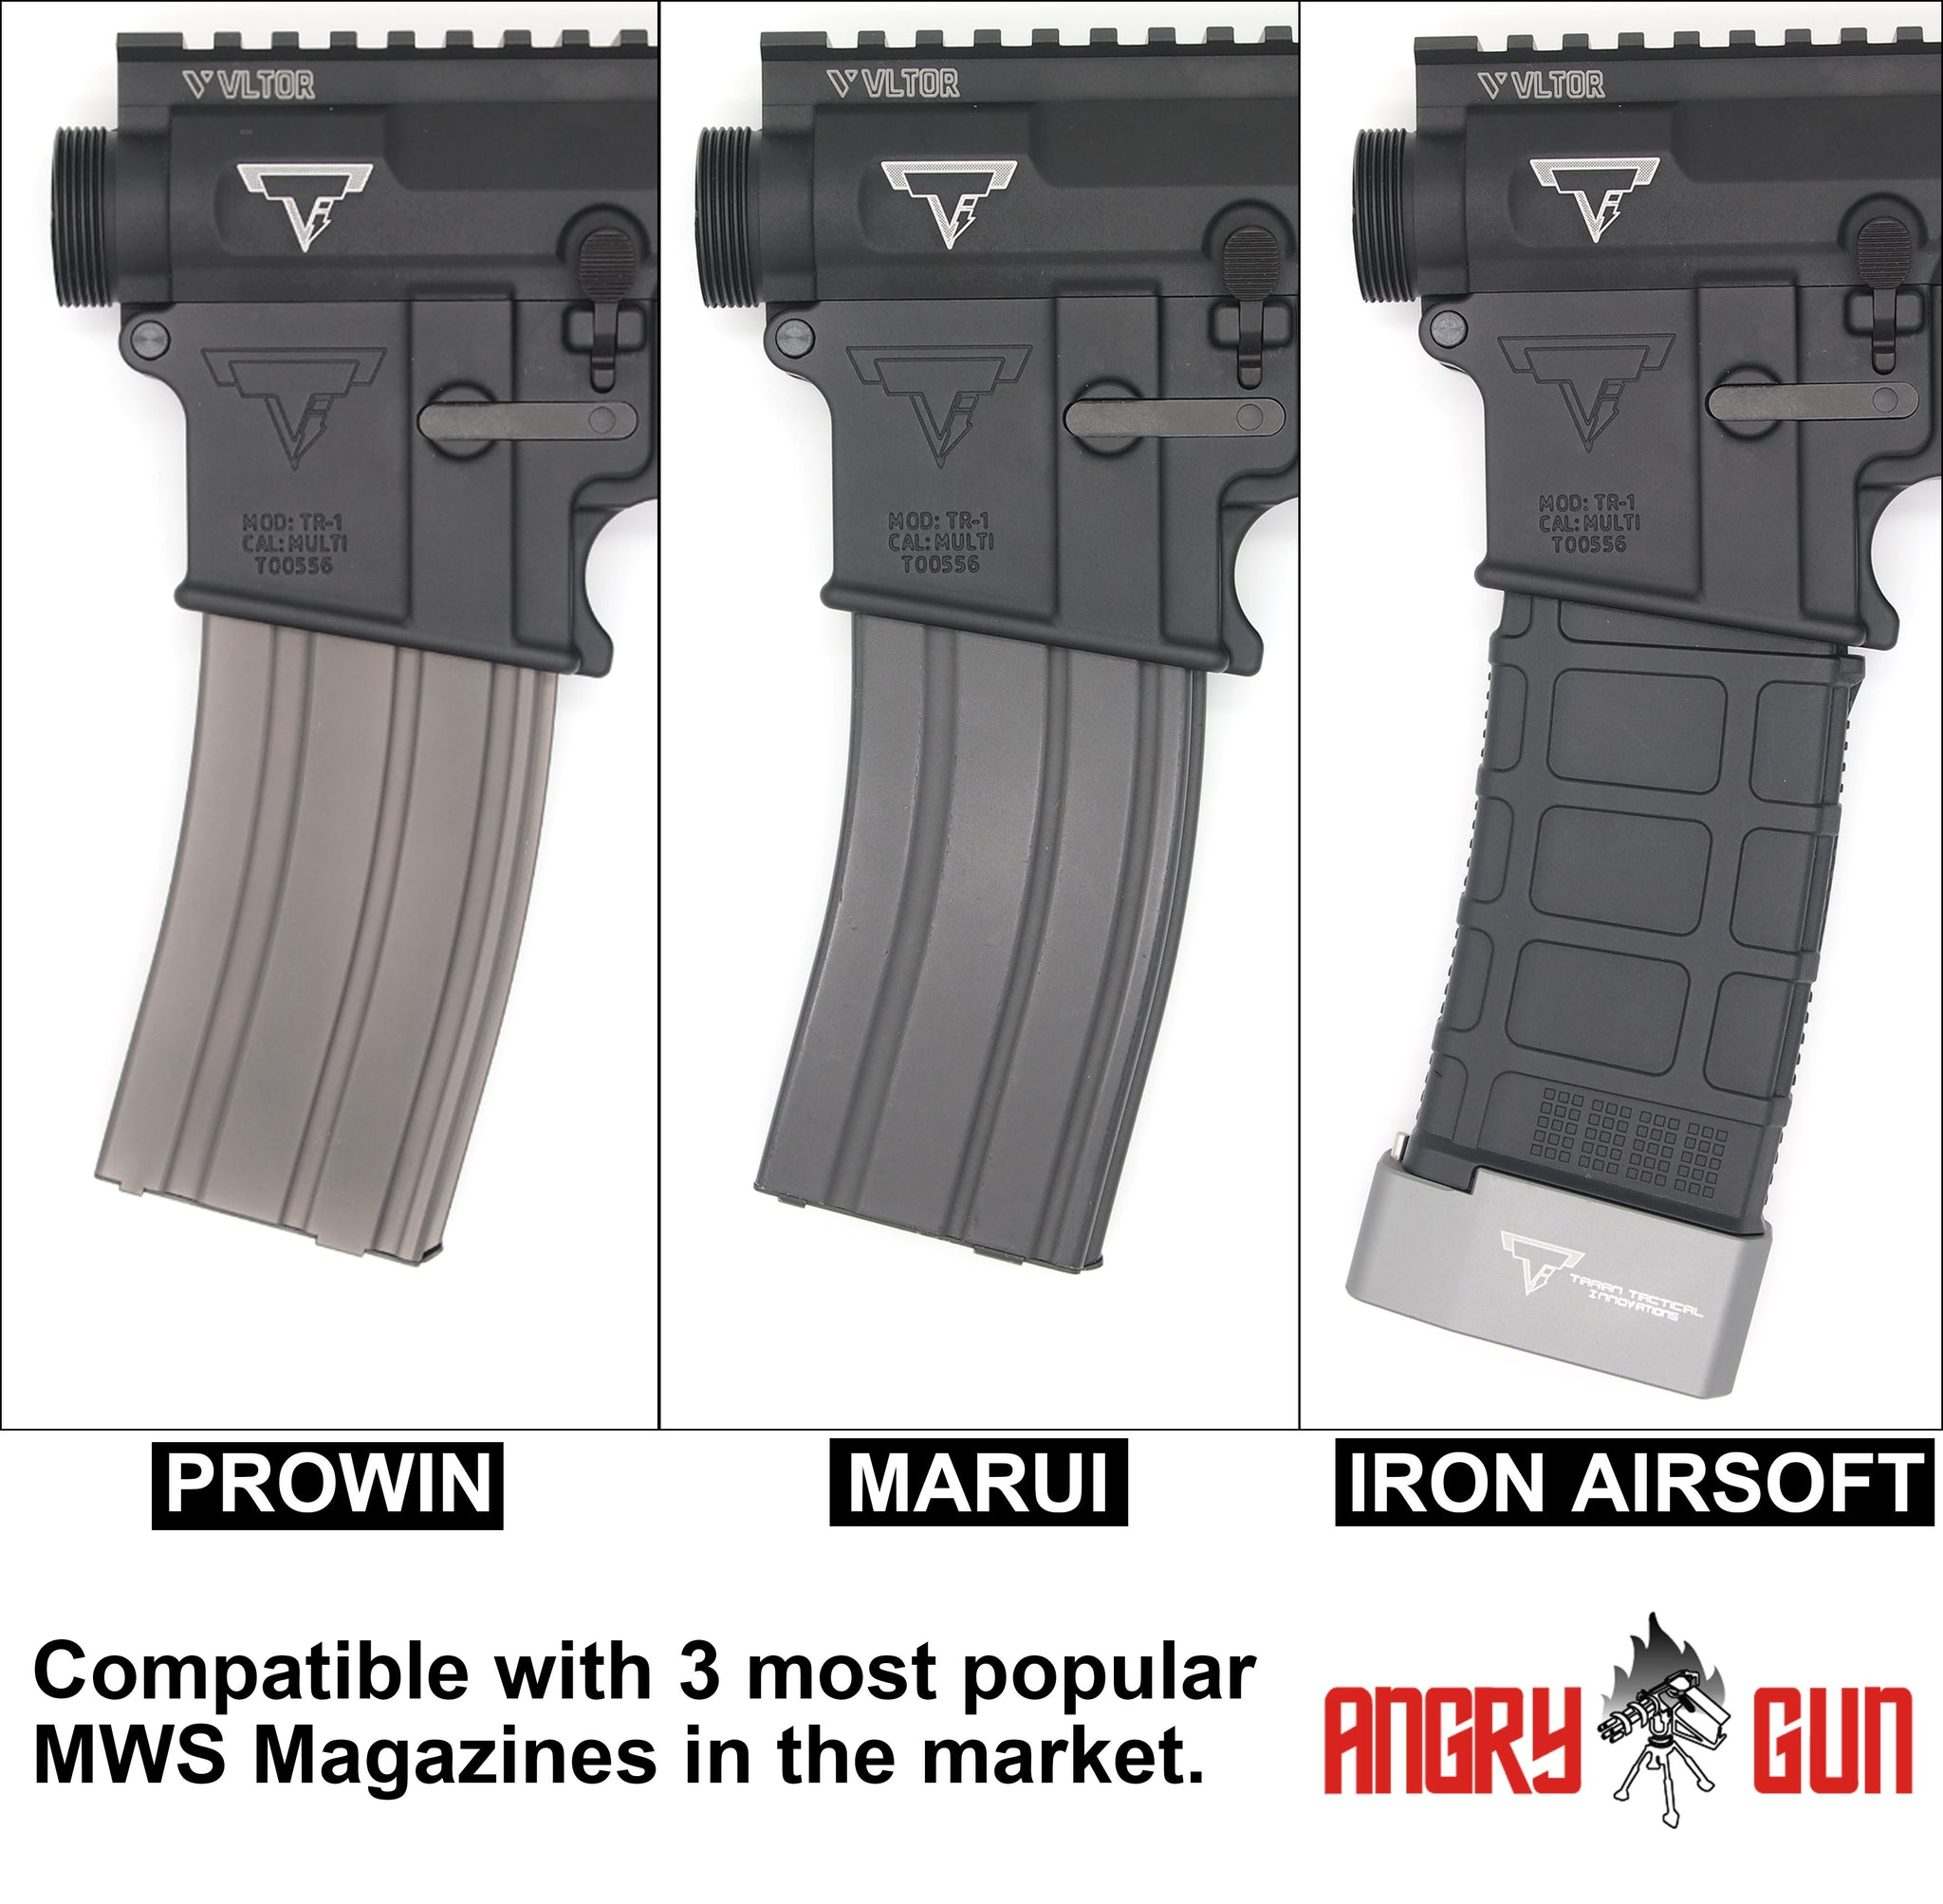 ANGRYGUN JOHN WICK RIFLE CNC CONVERSION KIT FOR MARUI M4 MWS GBB